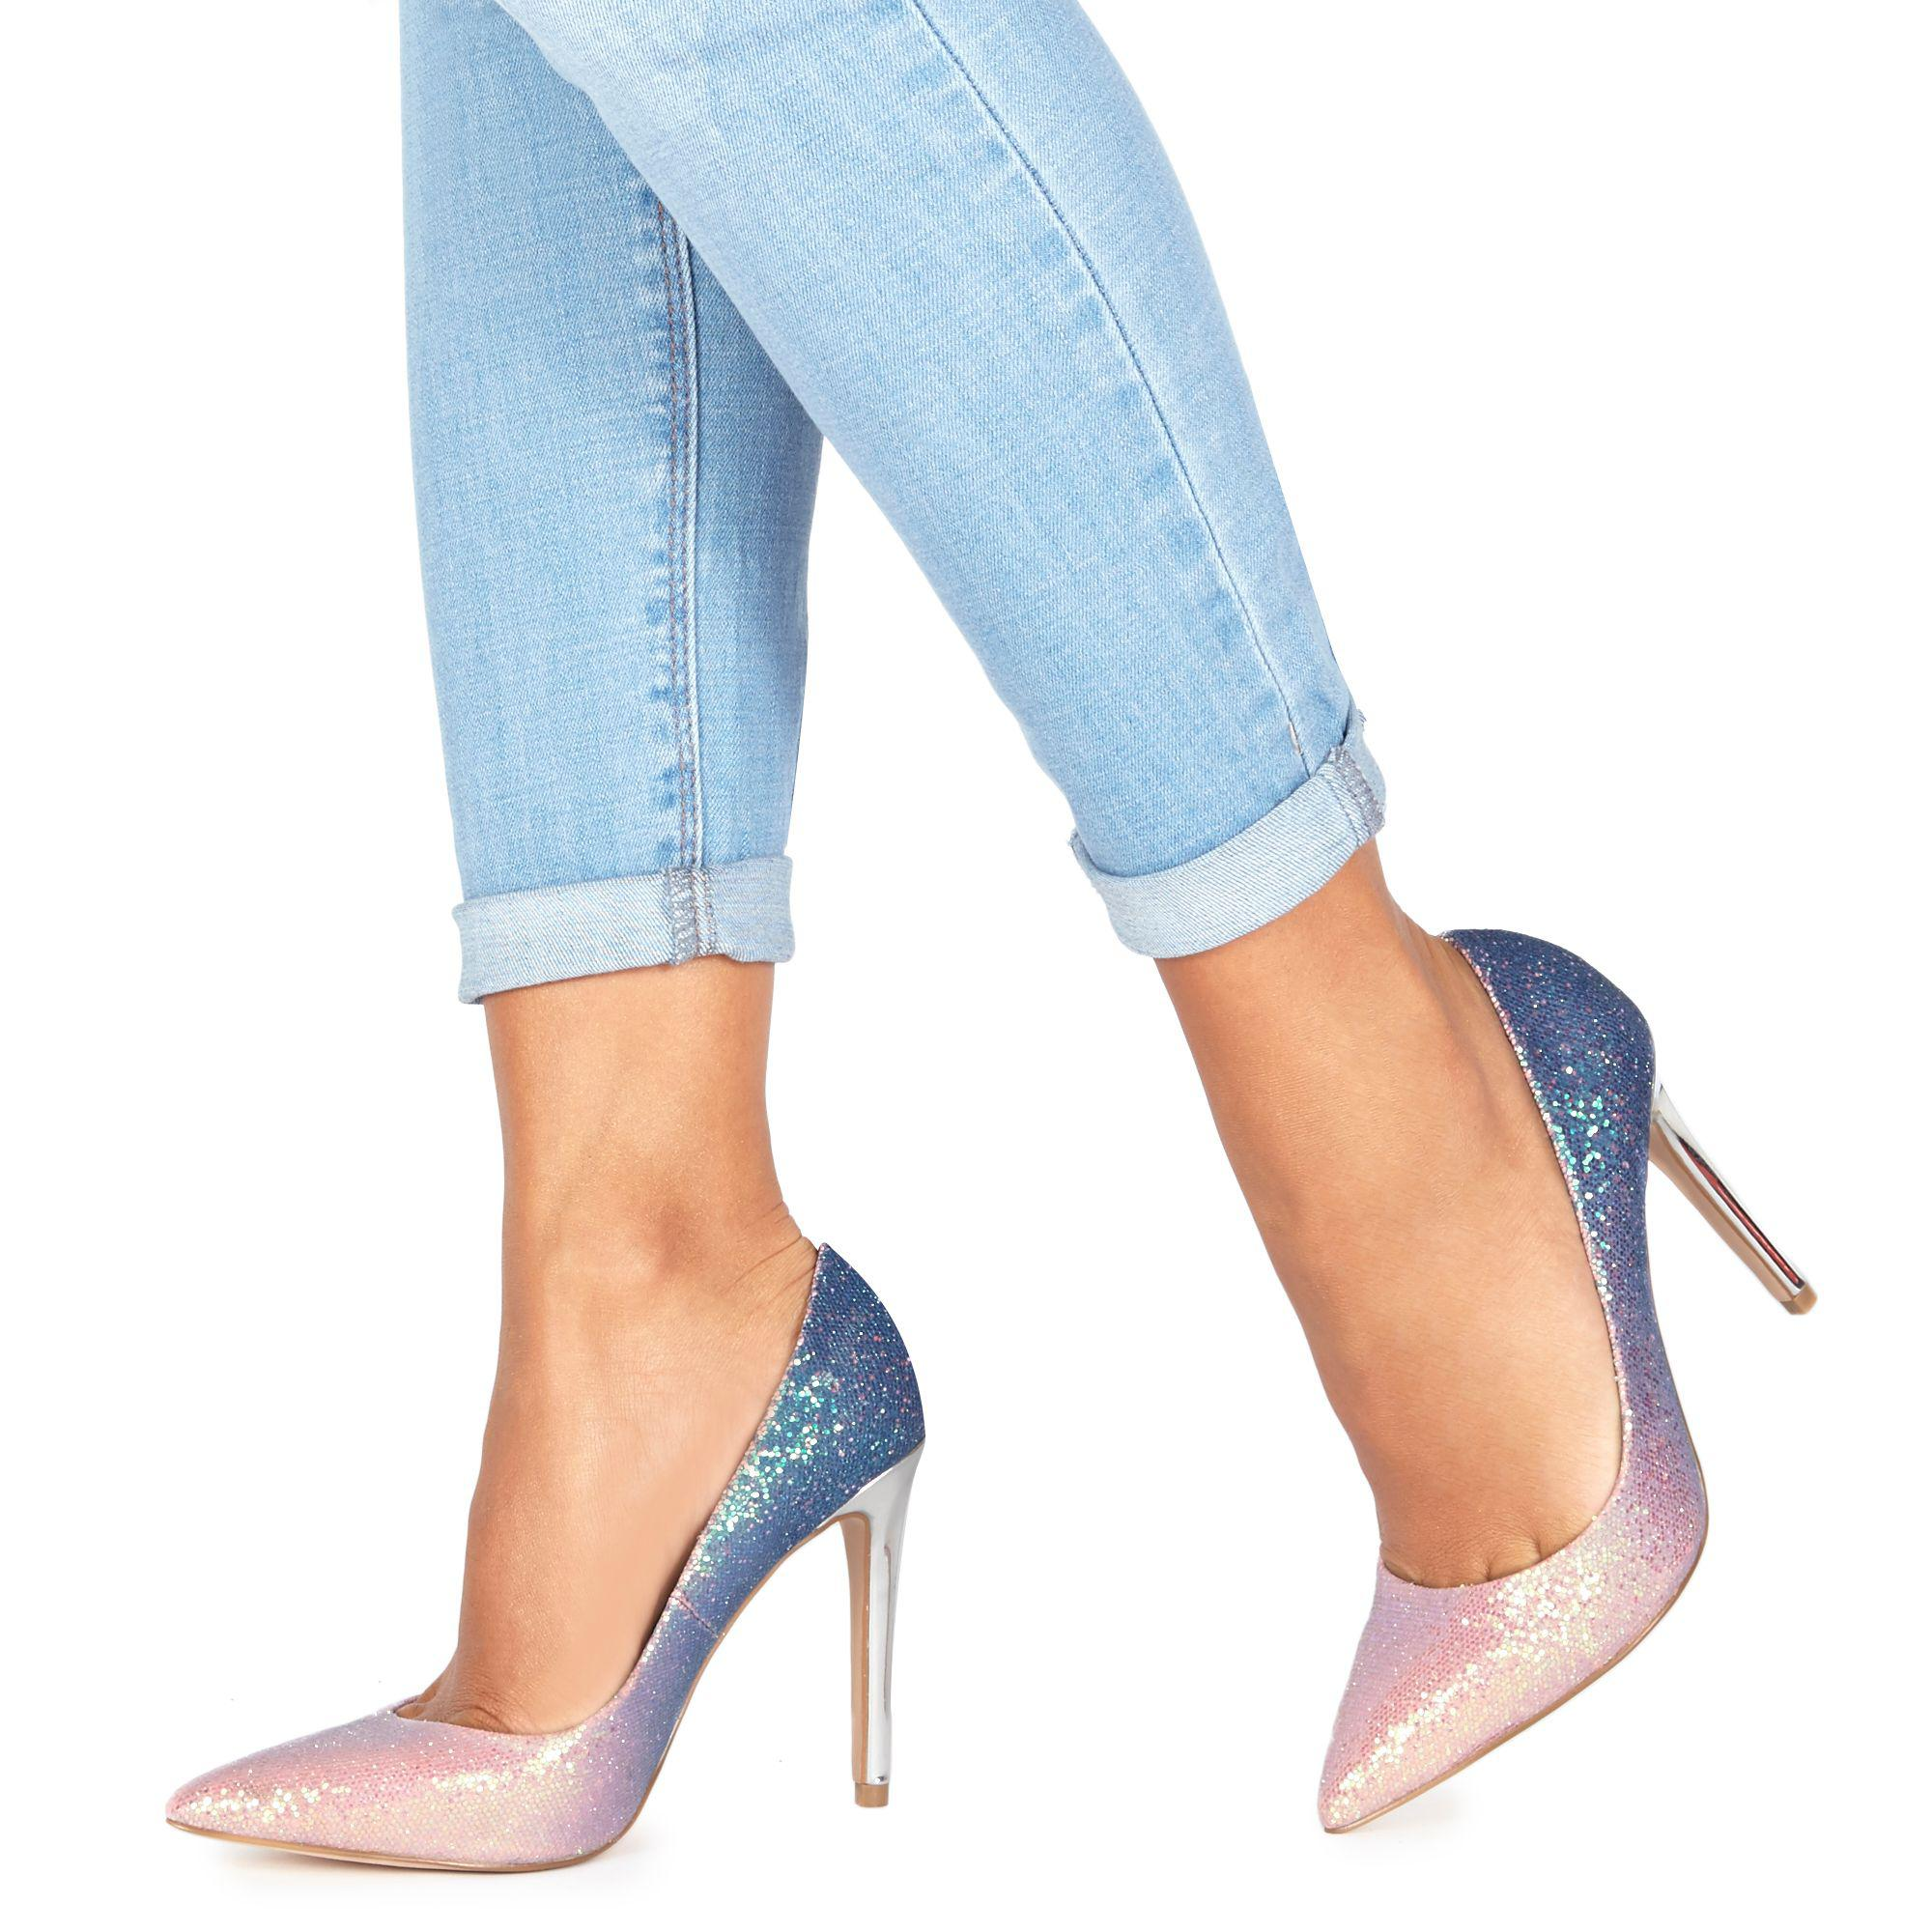 60da78822 Faith. Women s Pink And Blue Glitter  chloe Ombre  High Stiletto Heel  Pointed Shoes